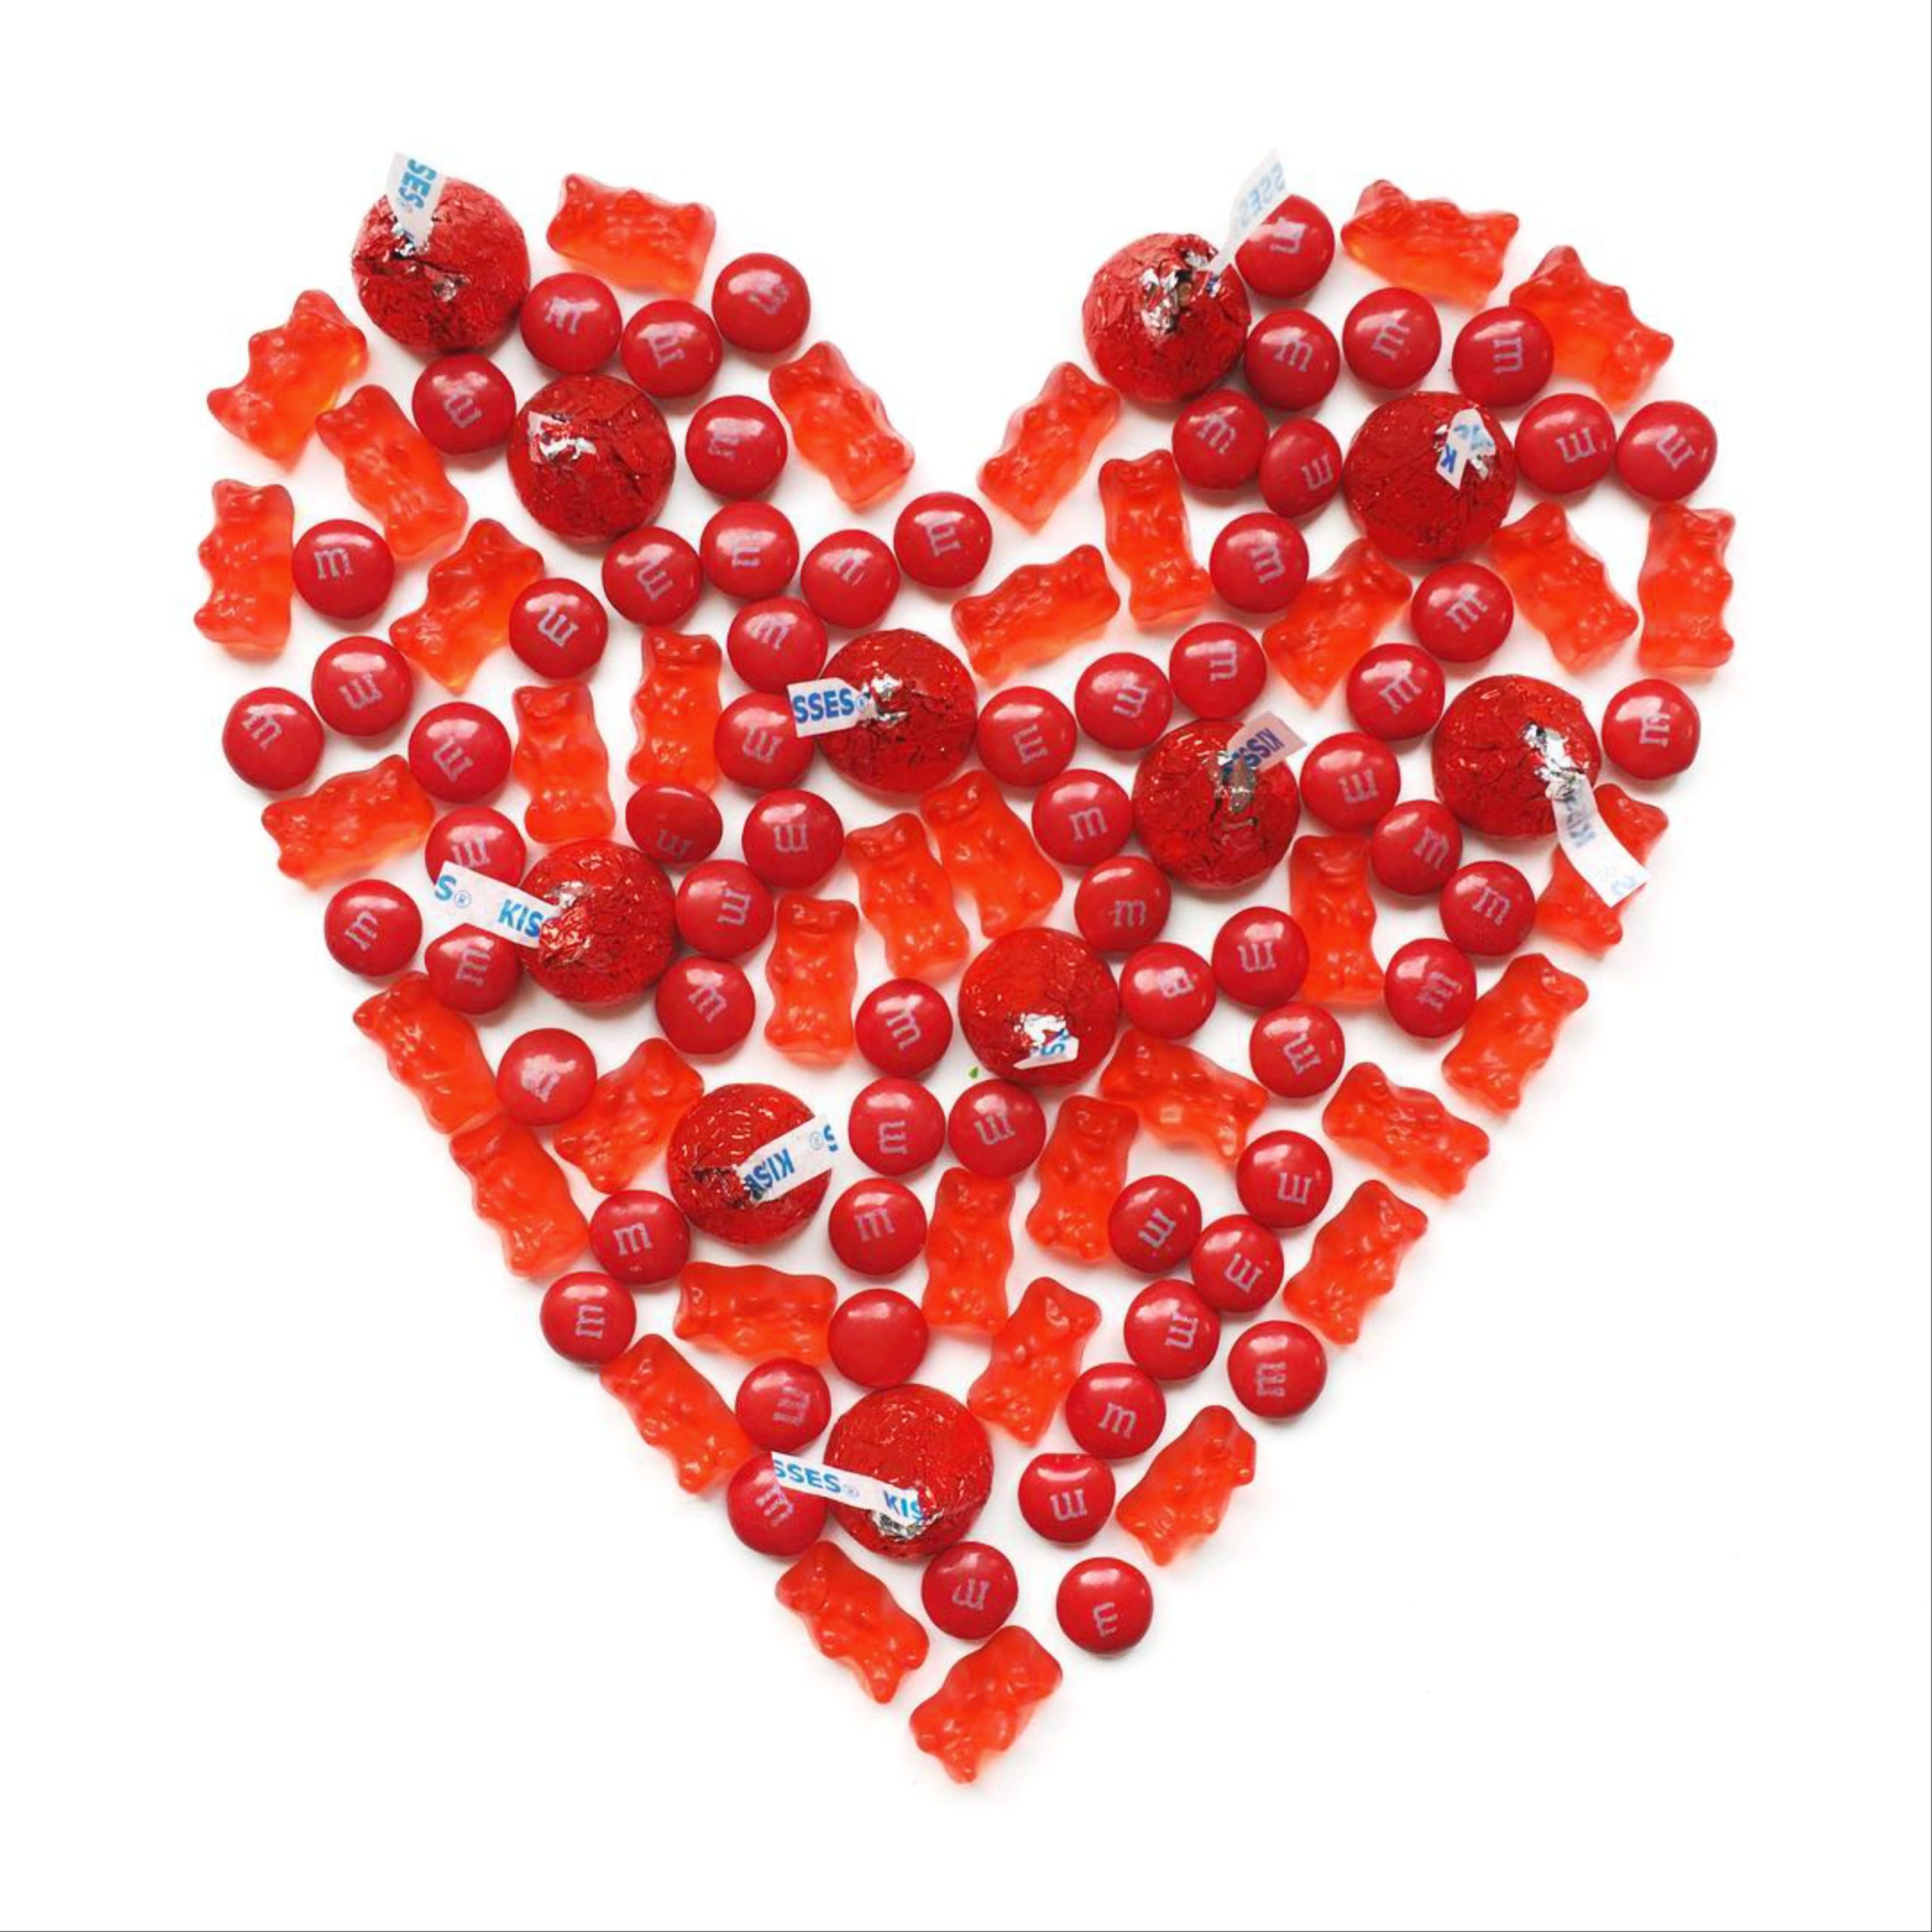 A heart shape made with red candies